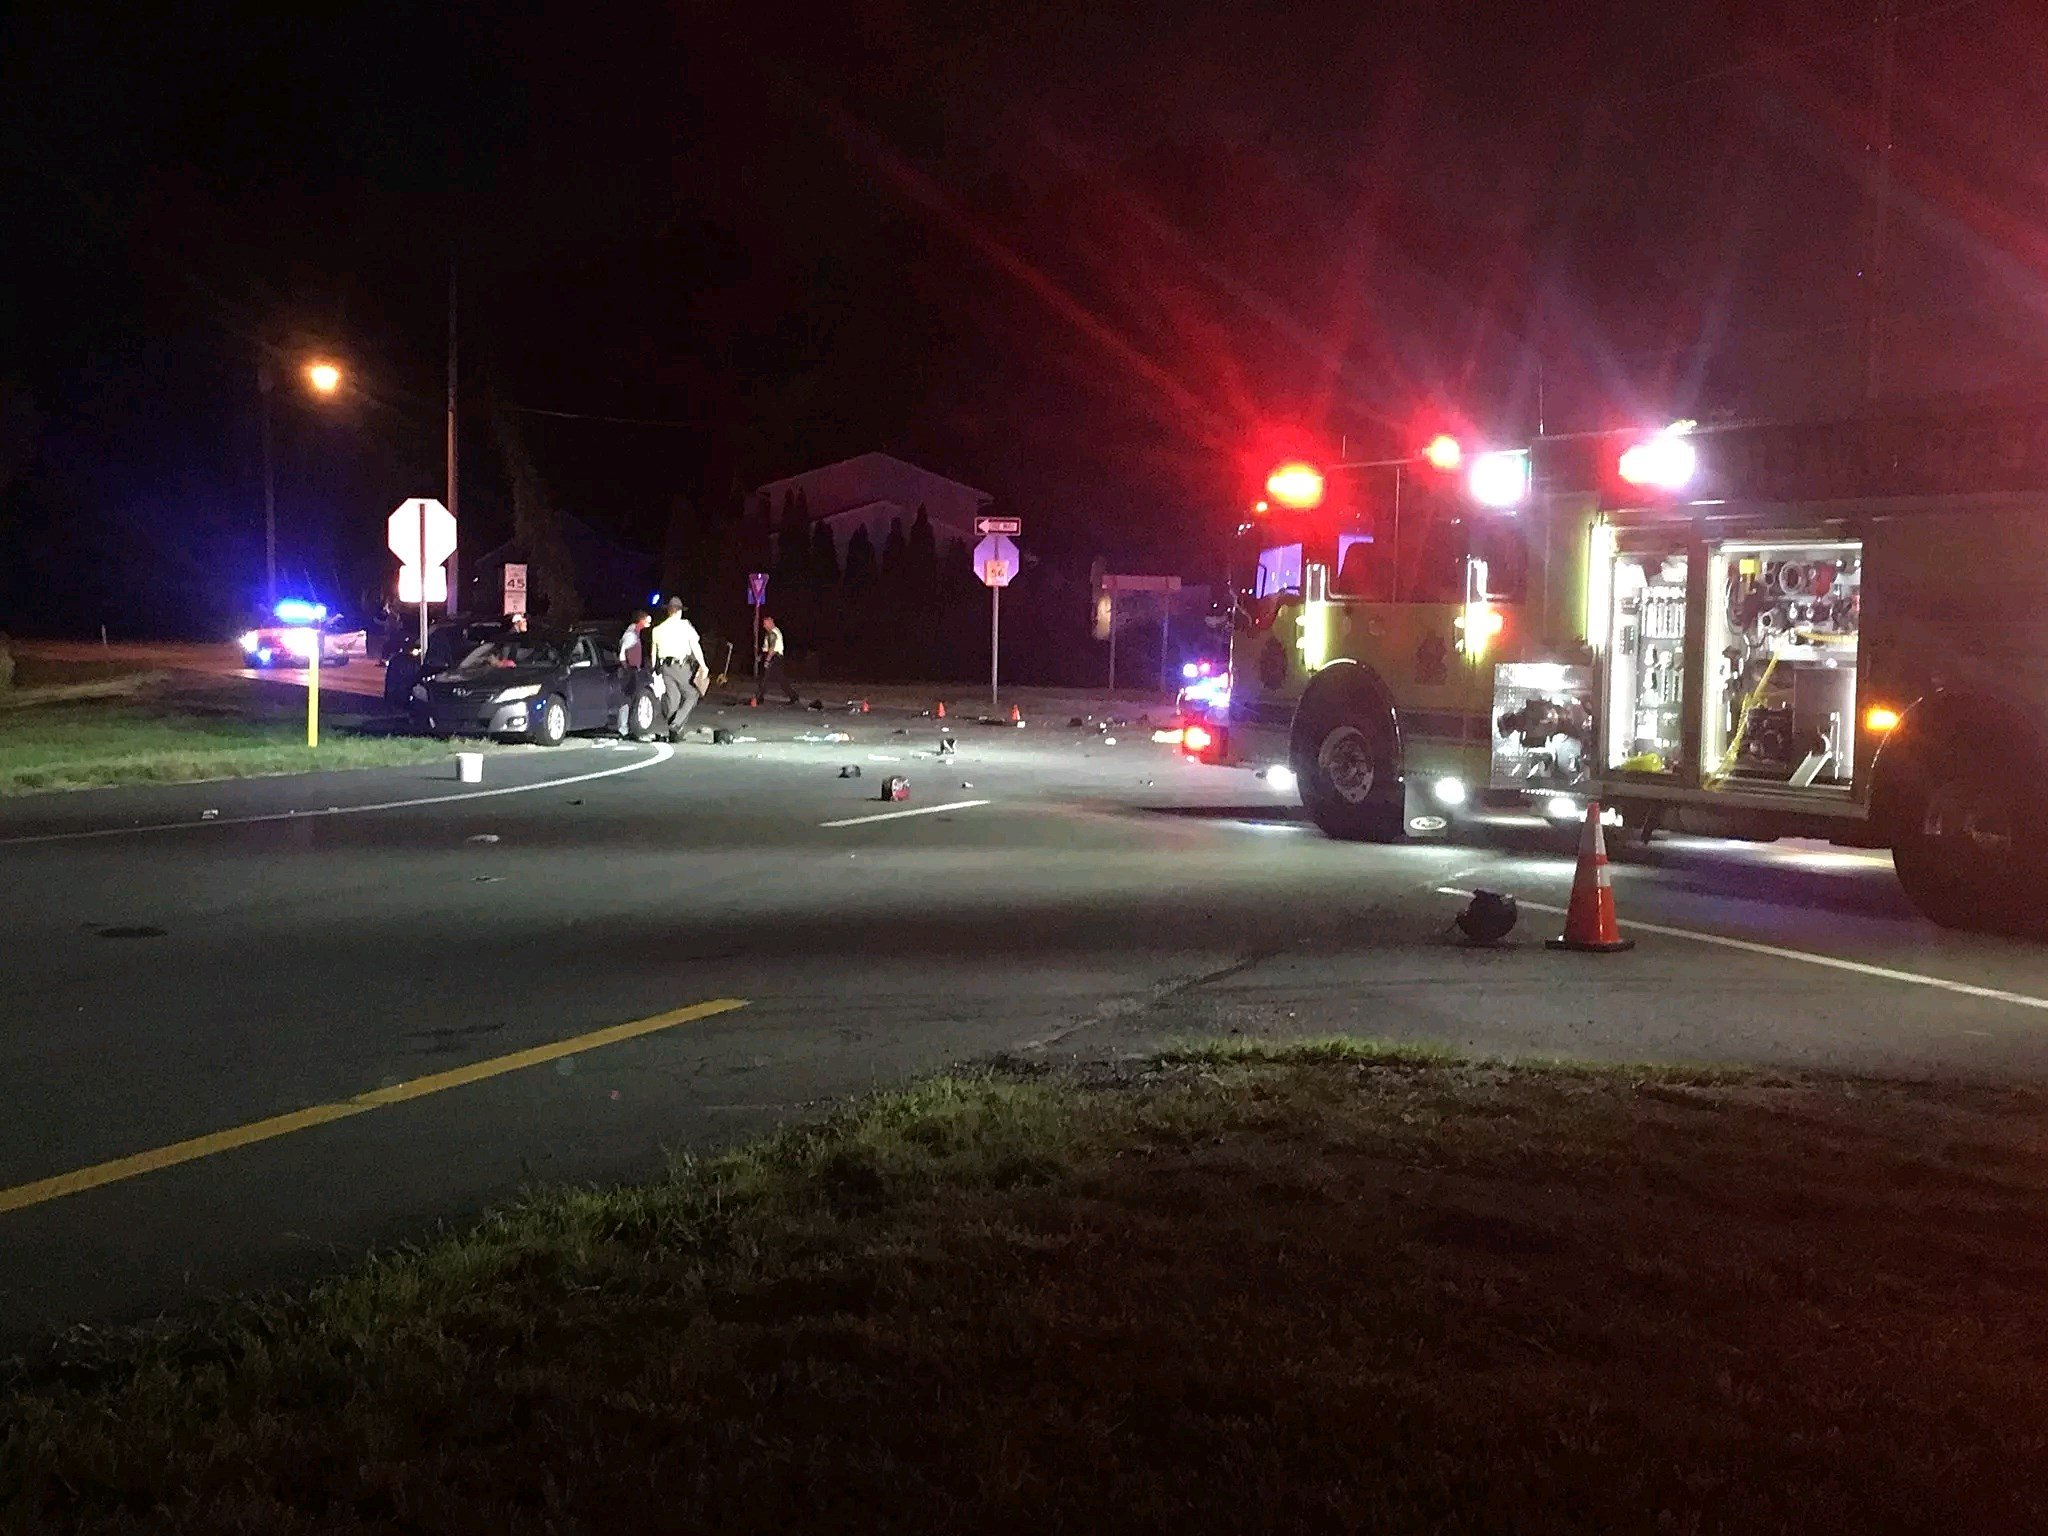 1 dead following motorcycle crash in Vienna Twp  - WFMJ com News